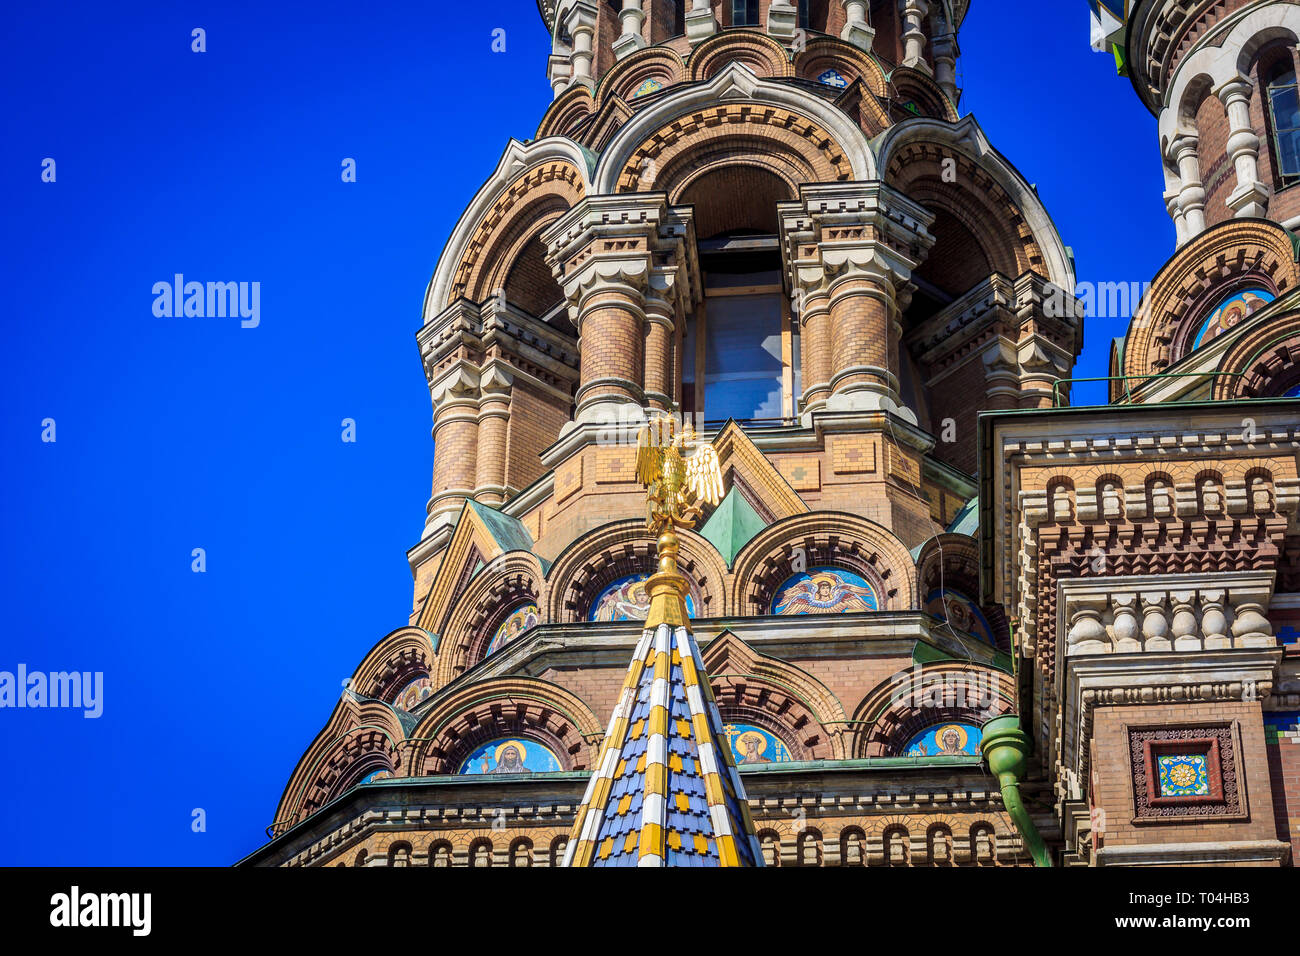 Savior - on - Blood Temple. Temple in Russia. Orthodox religion. April 23, 2018, Russia, St. Petersburg. - Stock Photo